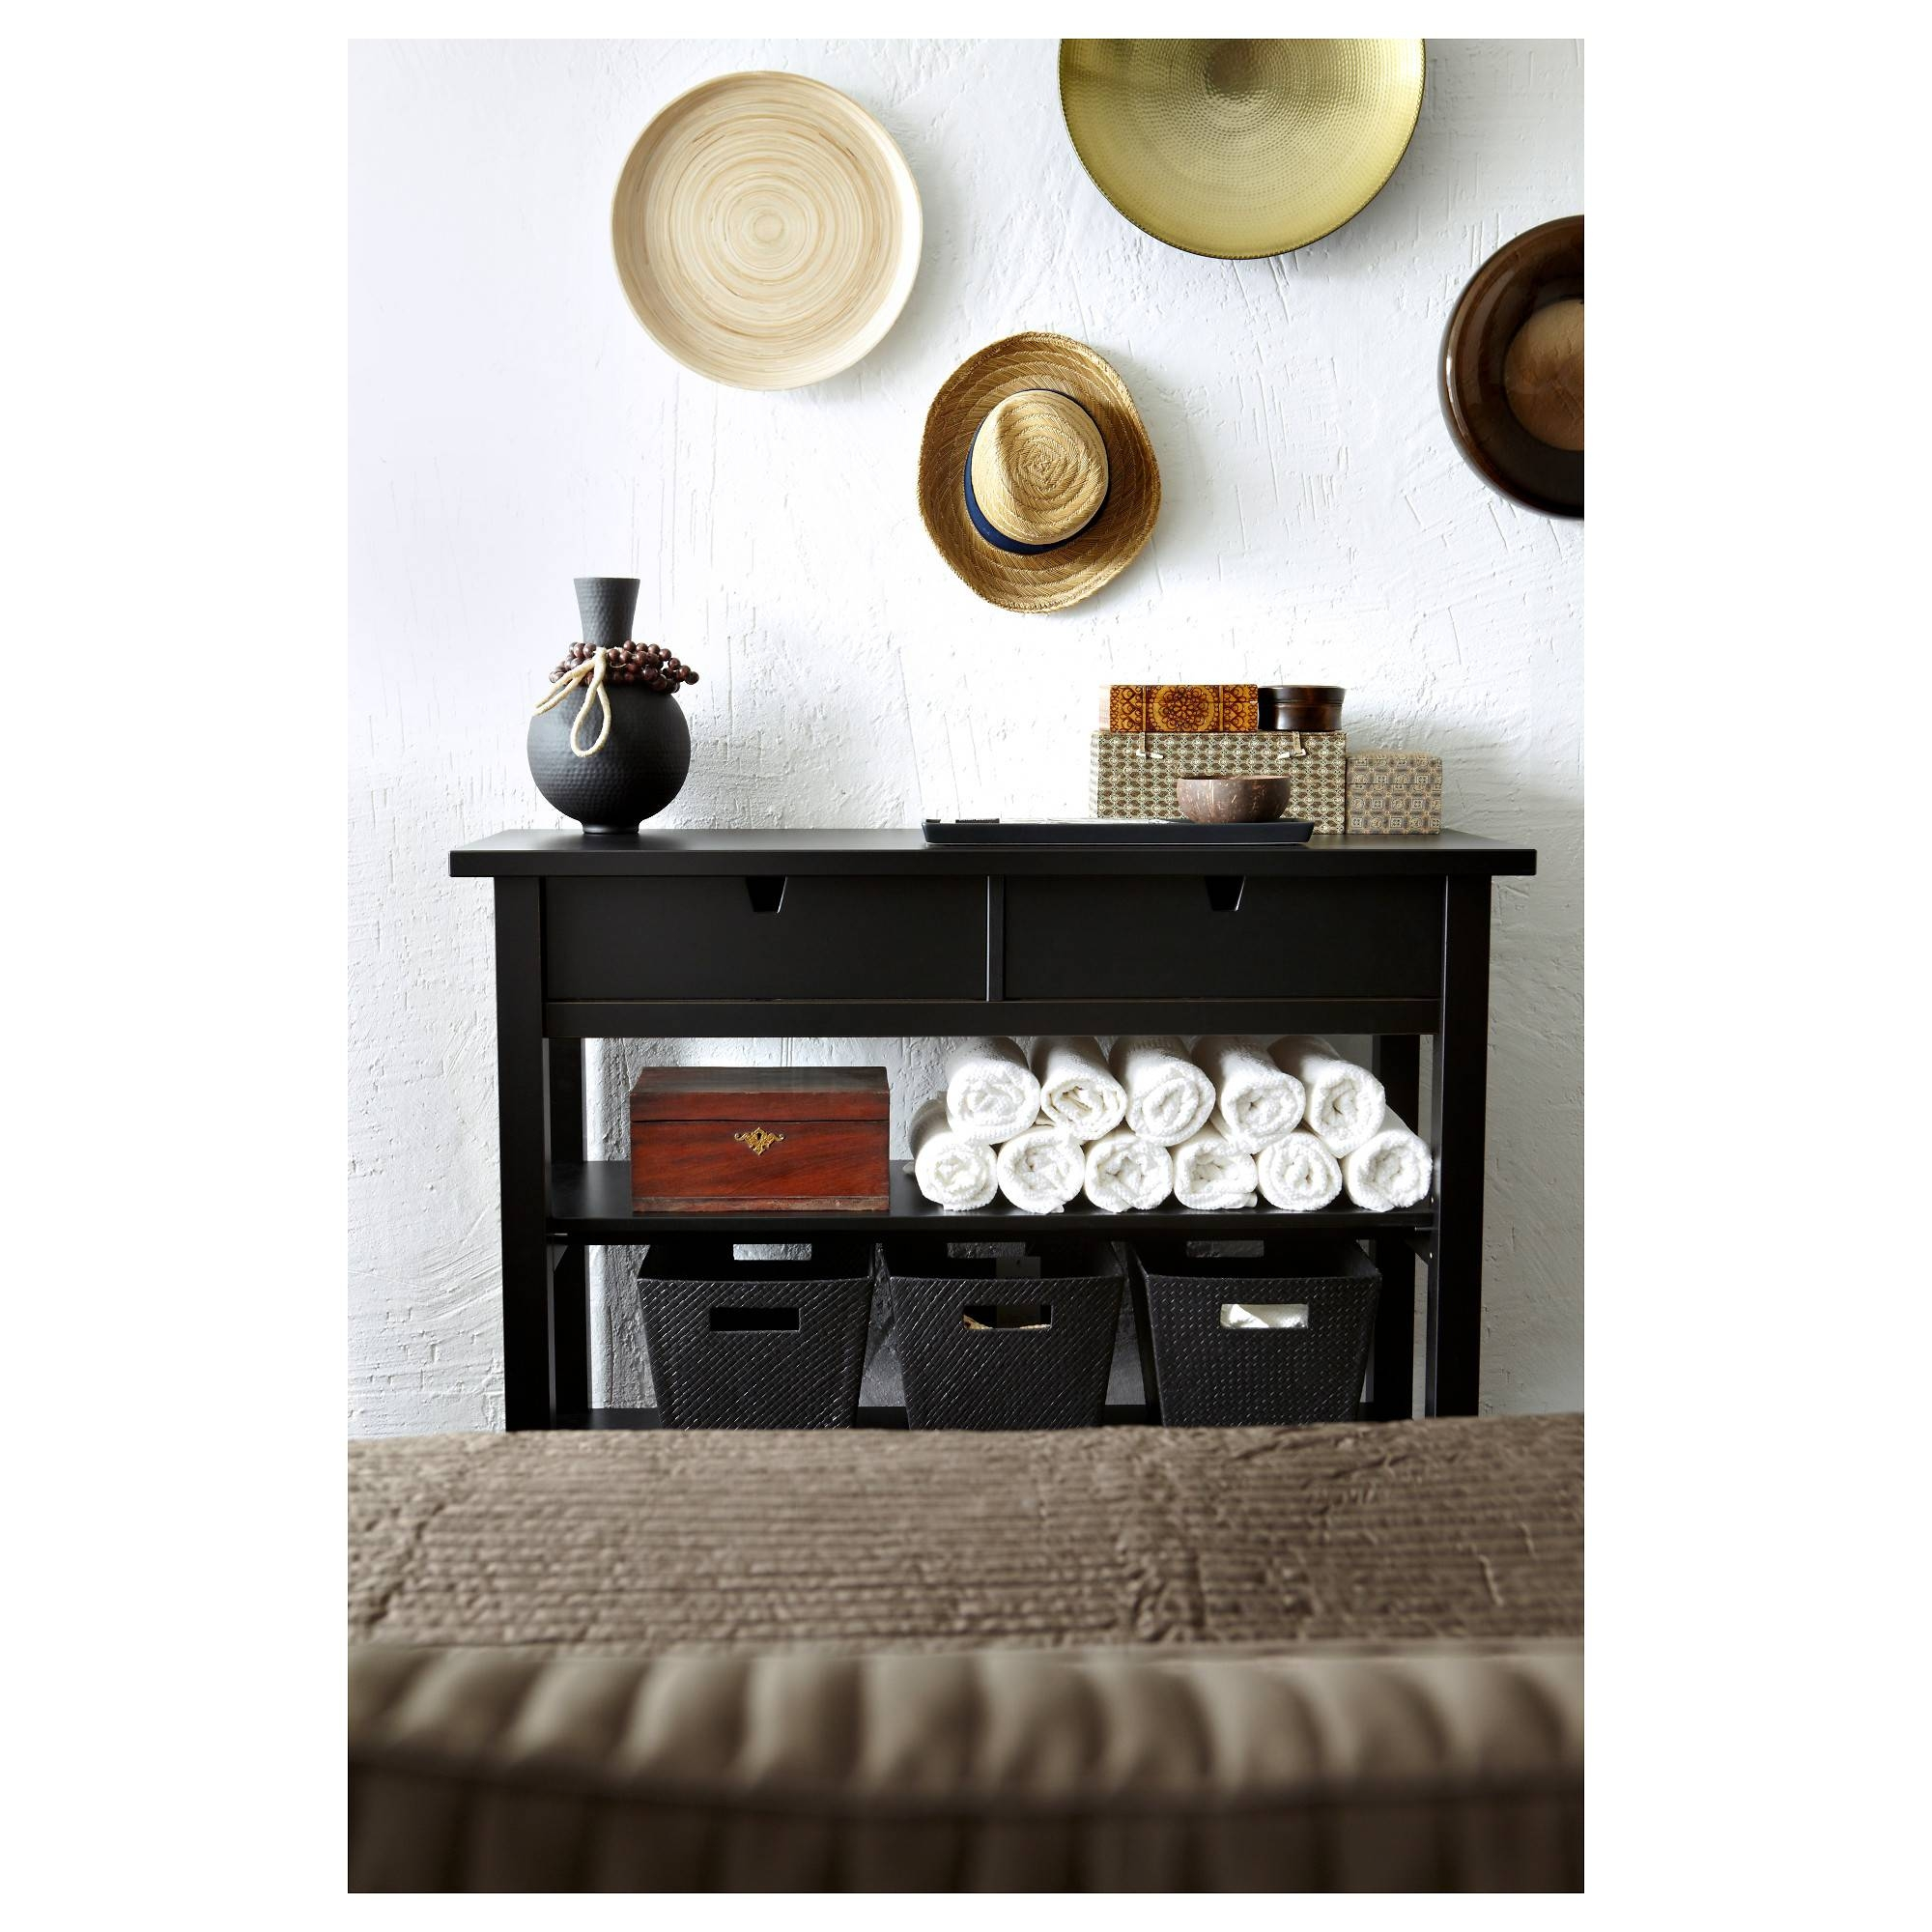 Popular Photo of Ikea Norden Sideboards